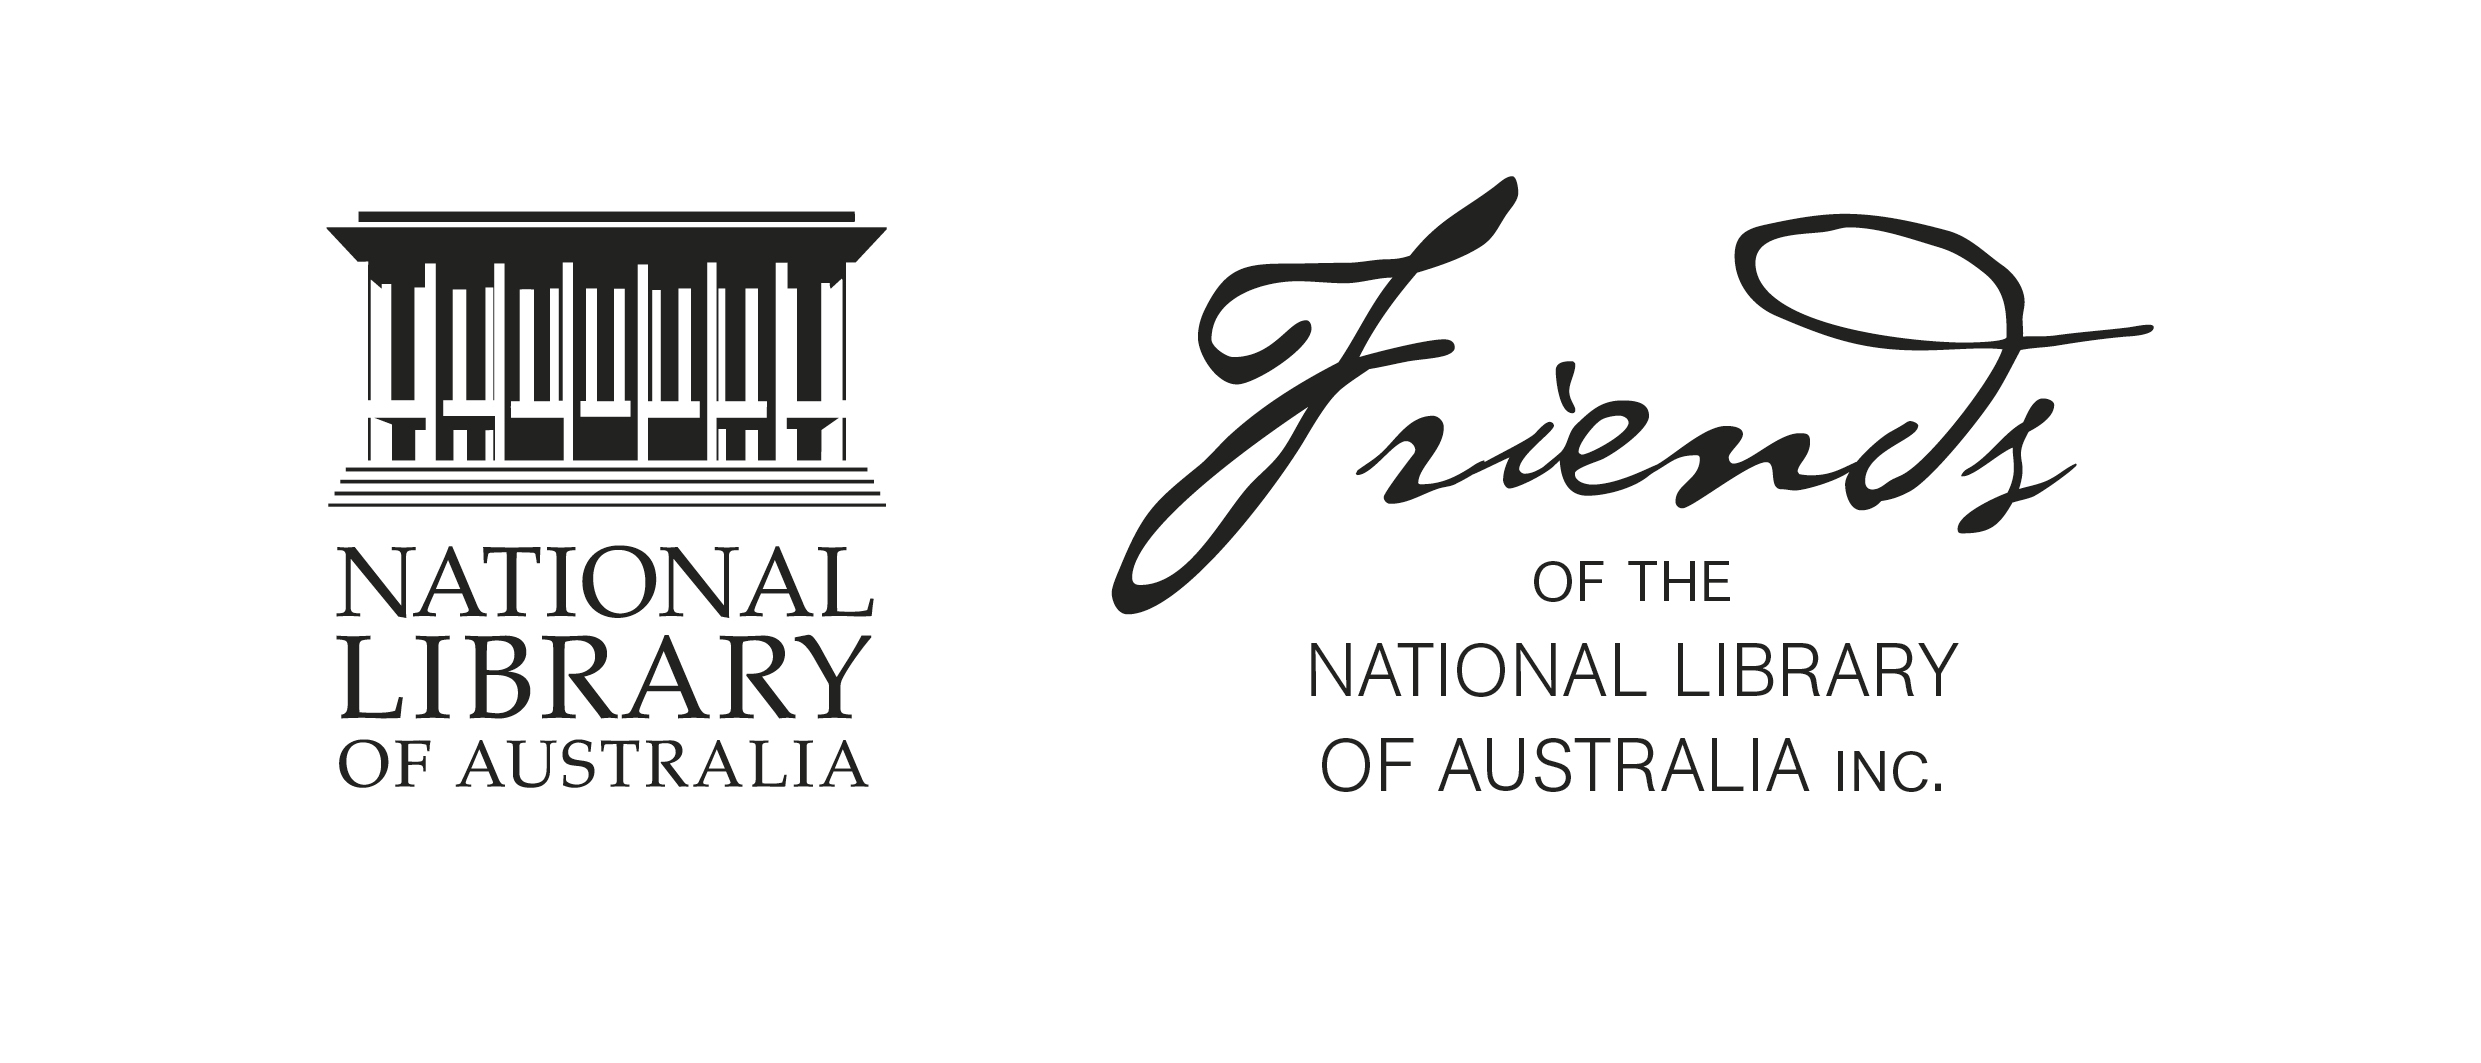 Friends of the National Library of Australia